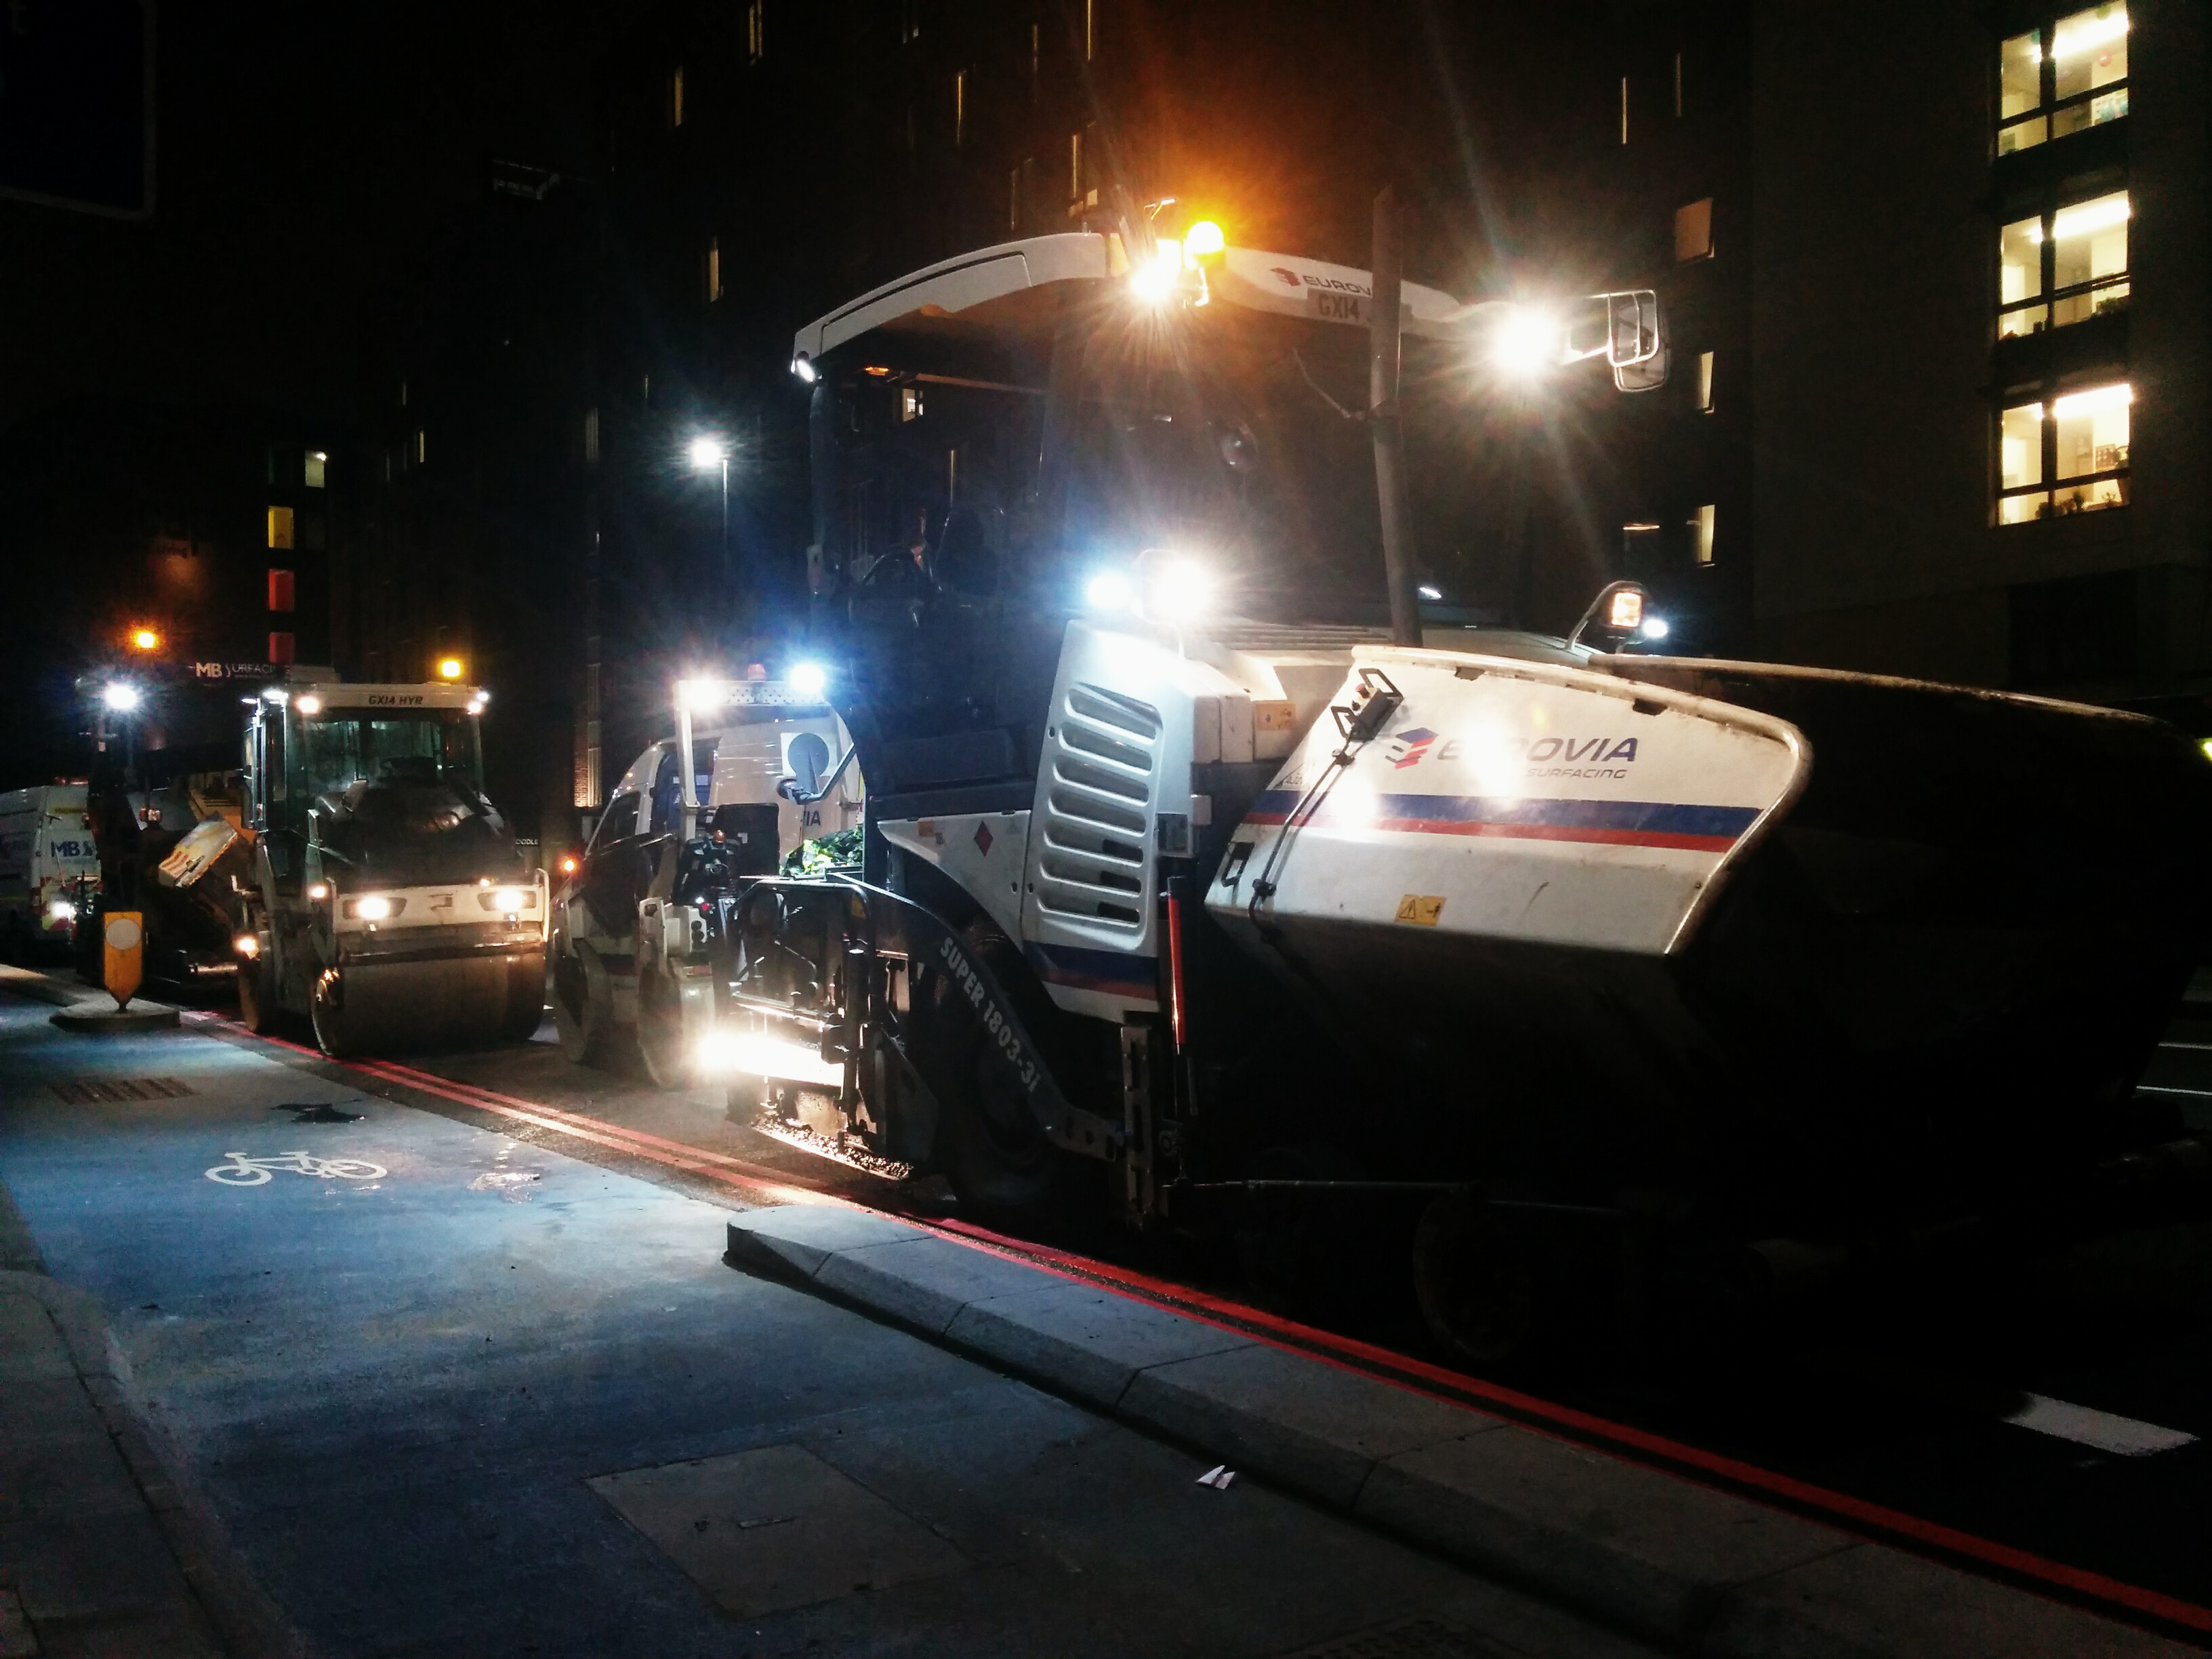 Road surface machinery at night Stepney Green